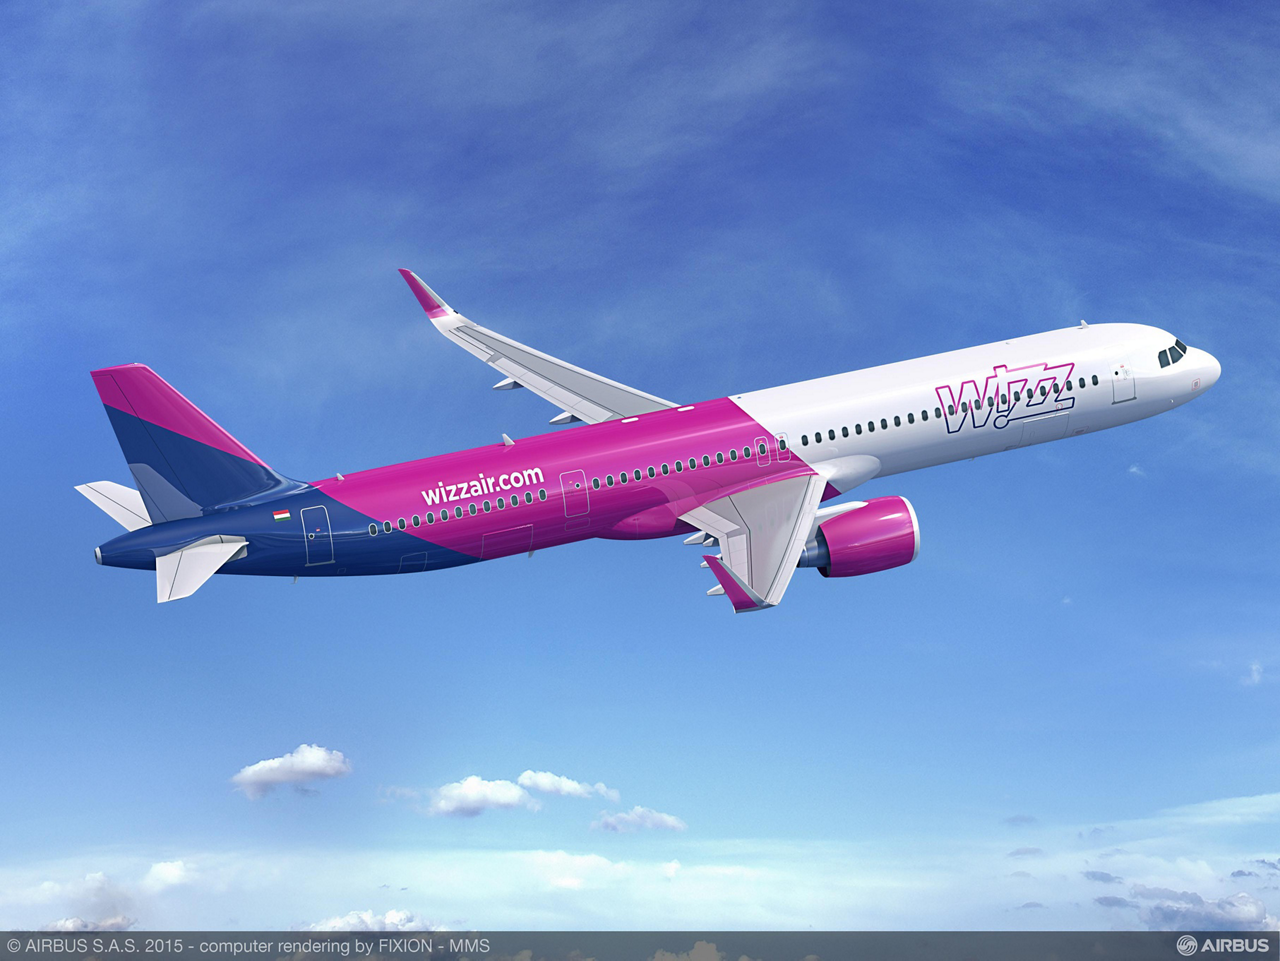 "Low-cost carrier Wizz Air has firmed up its commitment for 110 Airbus A321neo jetliners, making it the largest single order for this popular ""new engine option"" aircraft"